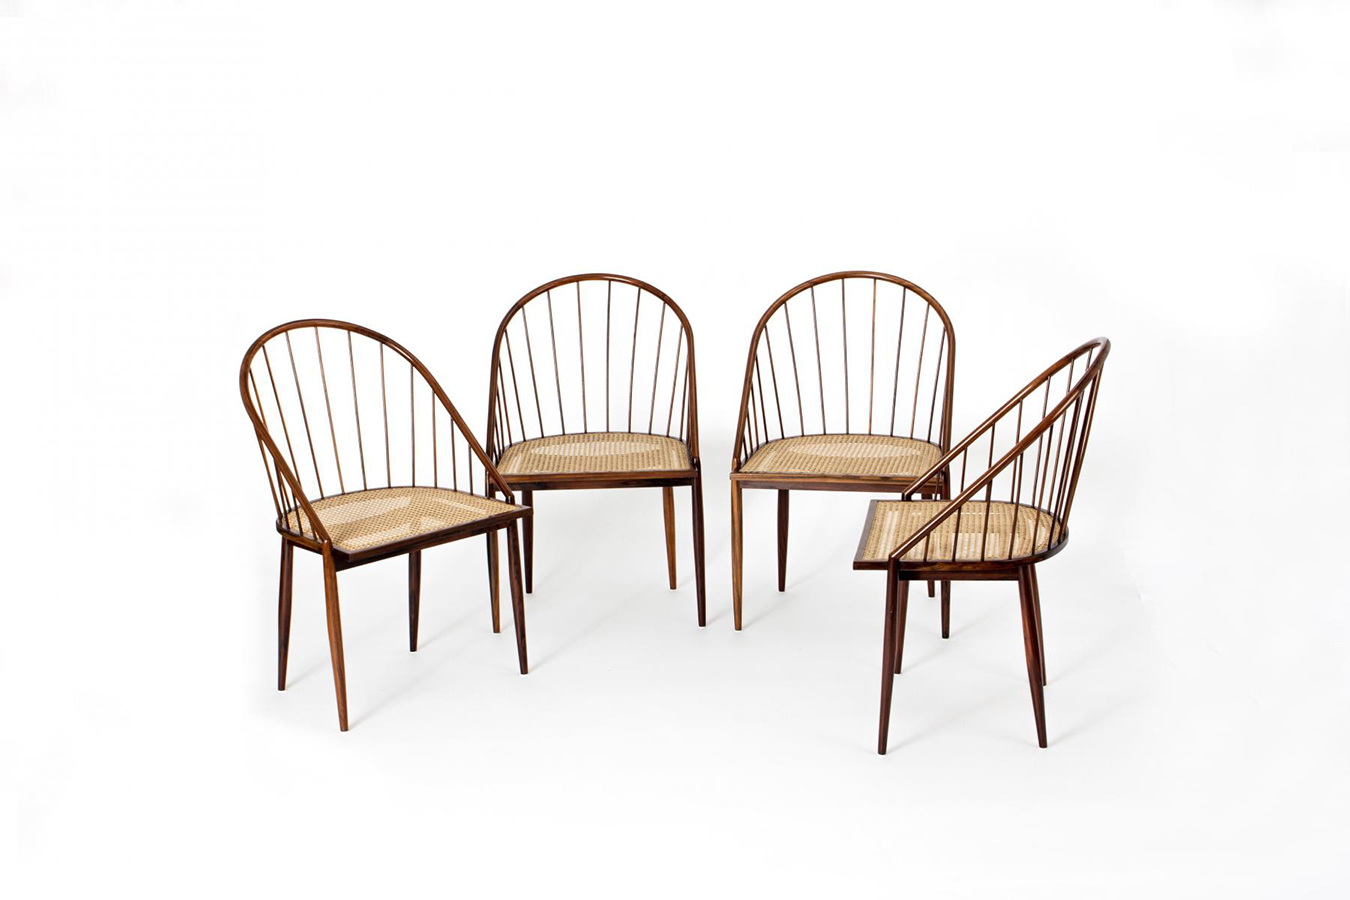 curva-chairs-from-joaquim-tenreiro-1960s-set-of-4-2.